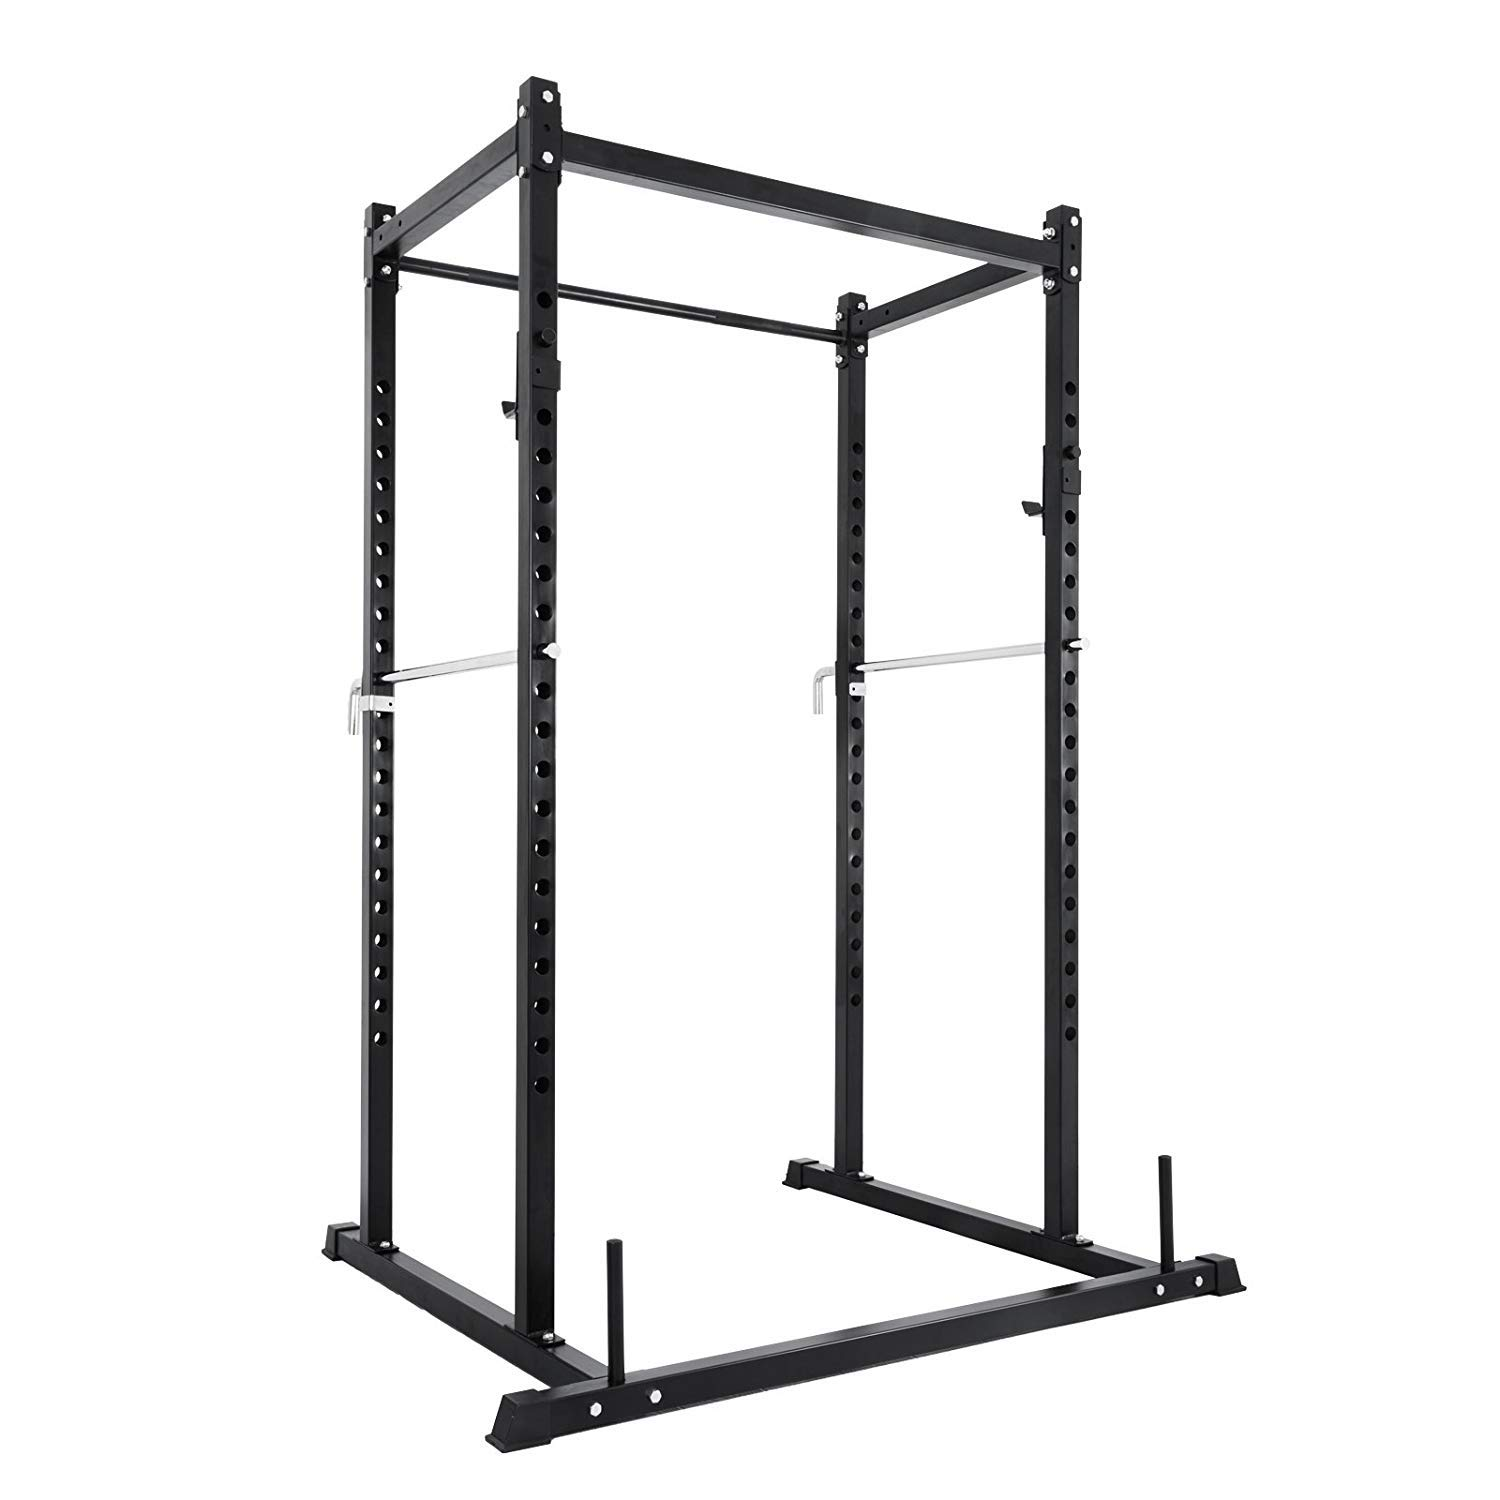 Popsport Deep Squat Rack Series Power Rack Squat Barbell Cage Bench Stand Heavy Duty Multi-Grip Chin-Up Fitness Power Rock for Home Gym (ZHPK-10)